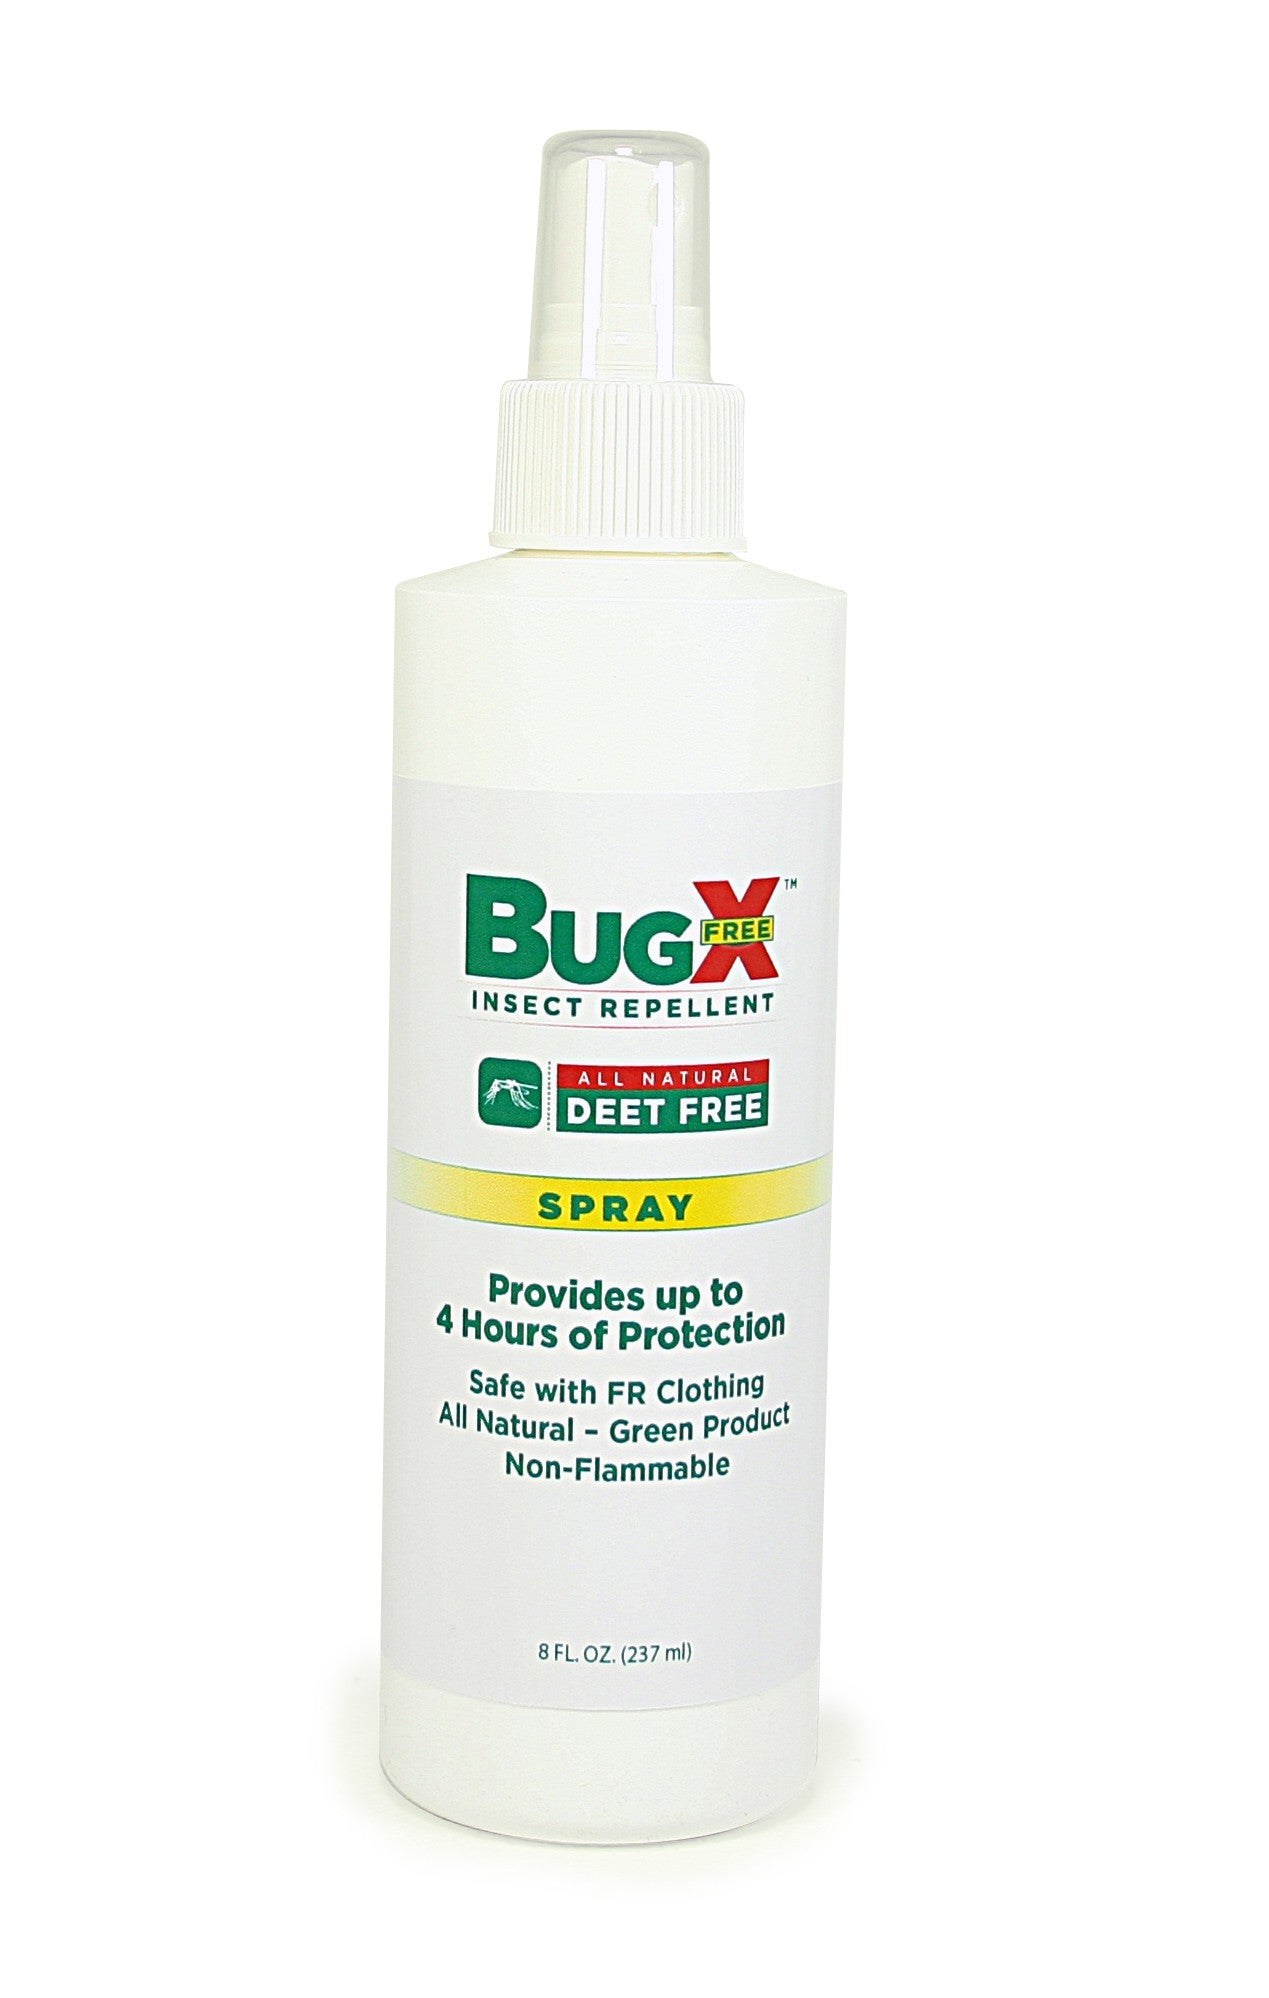 BugX DEET FREE Insect Repellent Spray, 8 Oz. Bottle, Case Of 12 - BS-FAK-18-808-1-FM